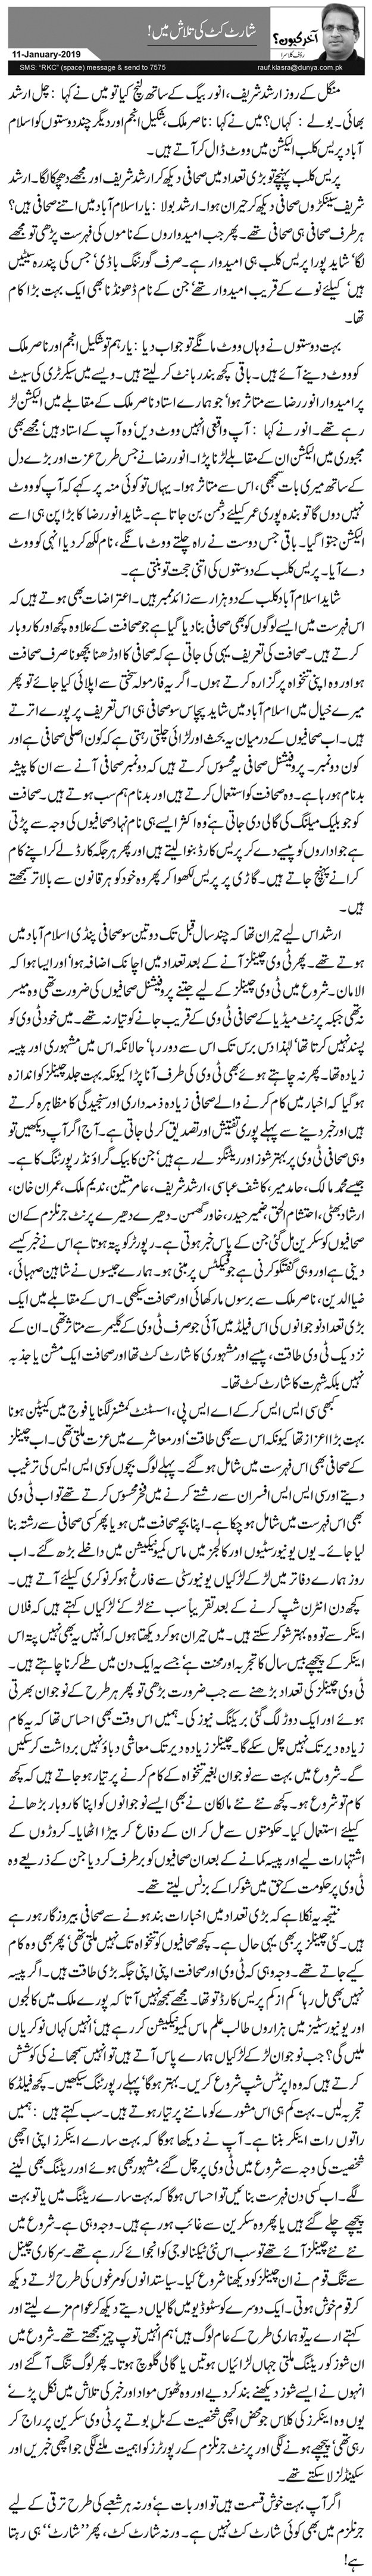 Shortcut Ki Talash Main | Rauf Klasra | Daily Urdu Columns